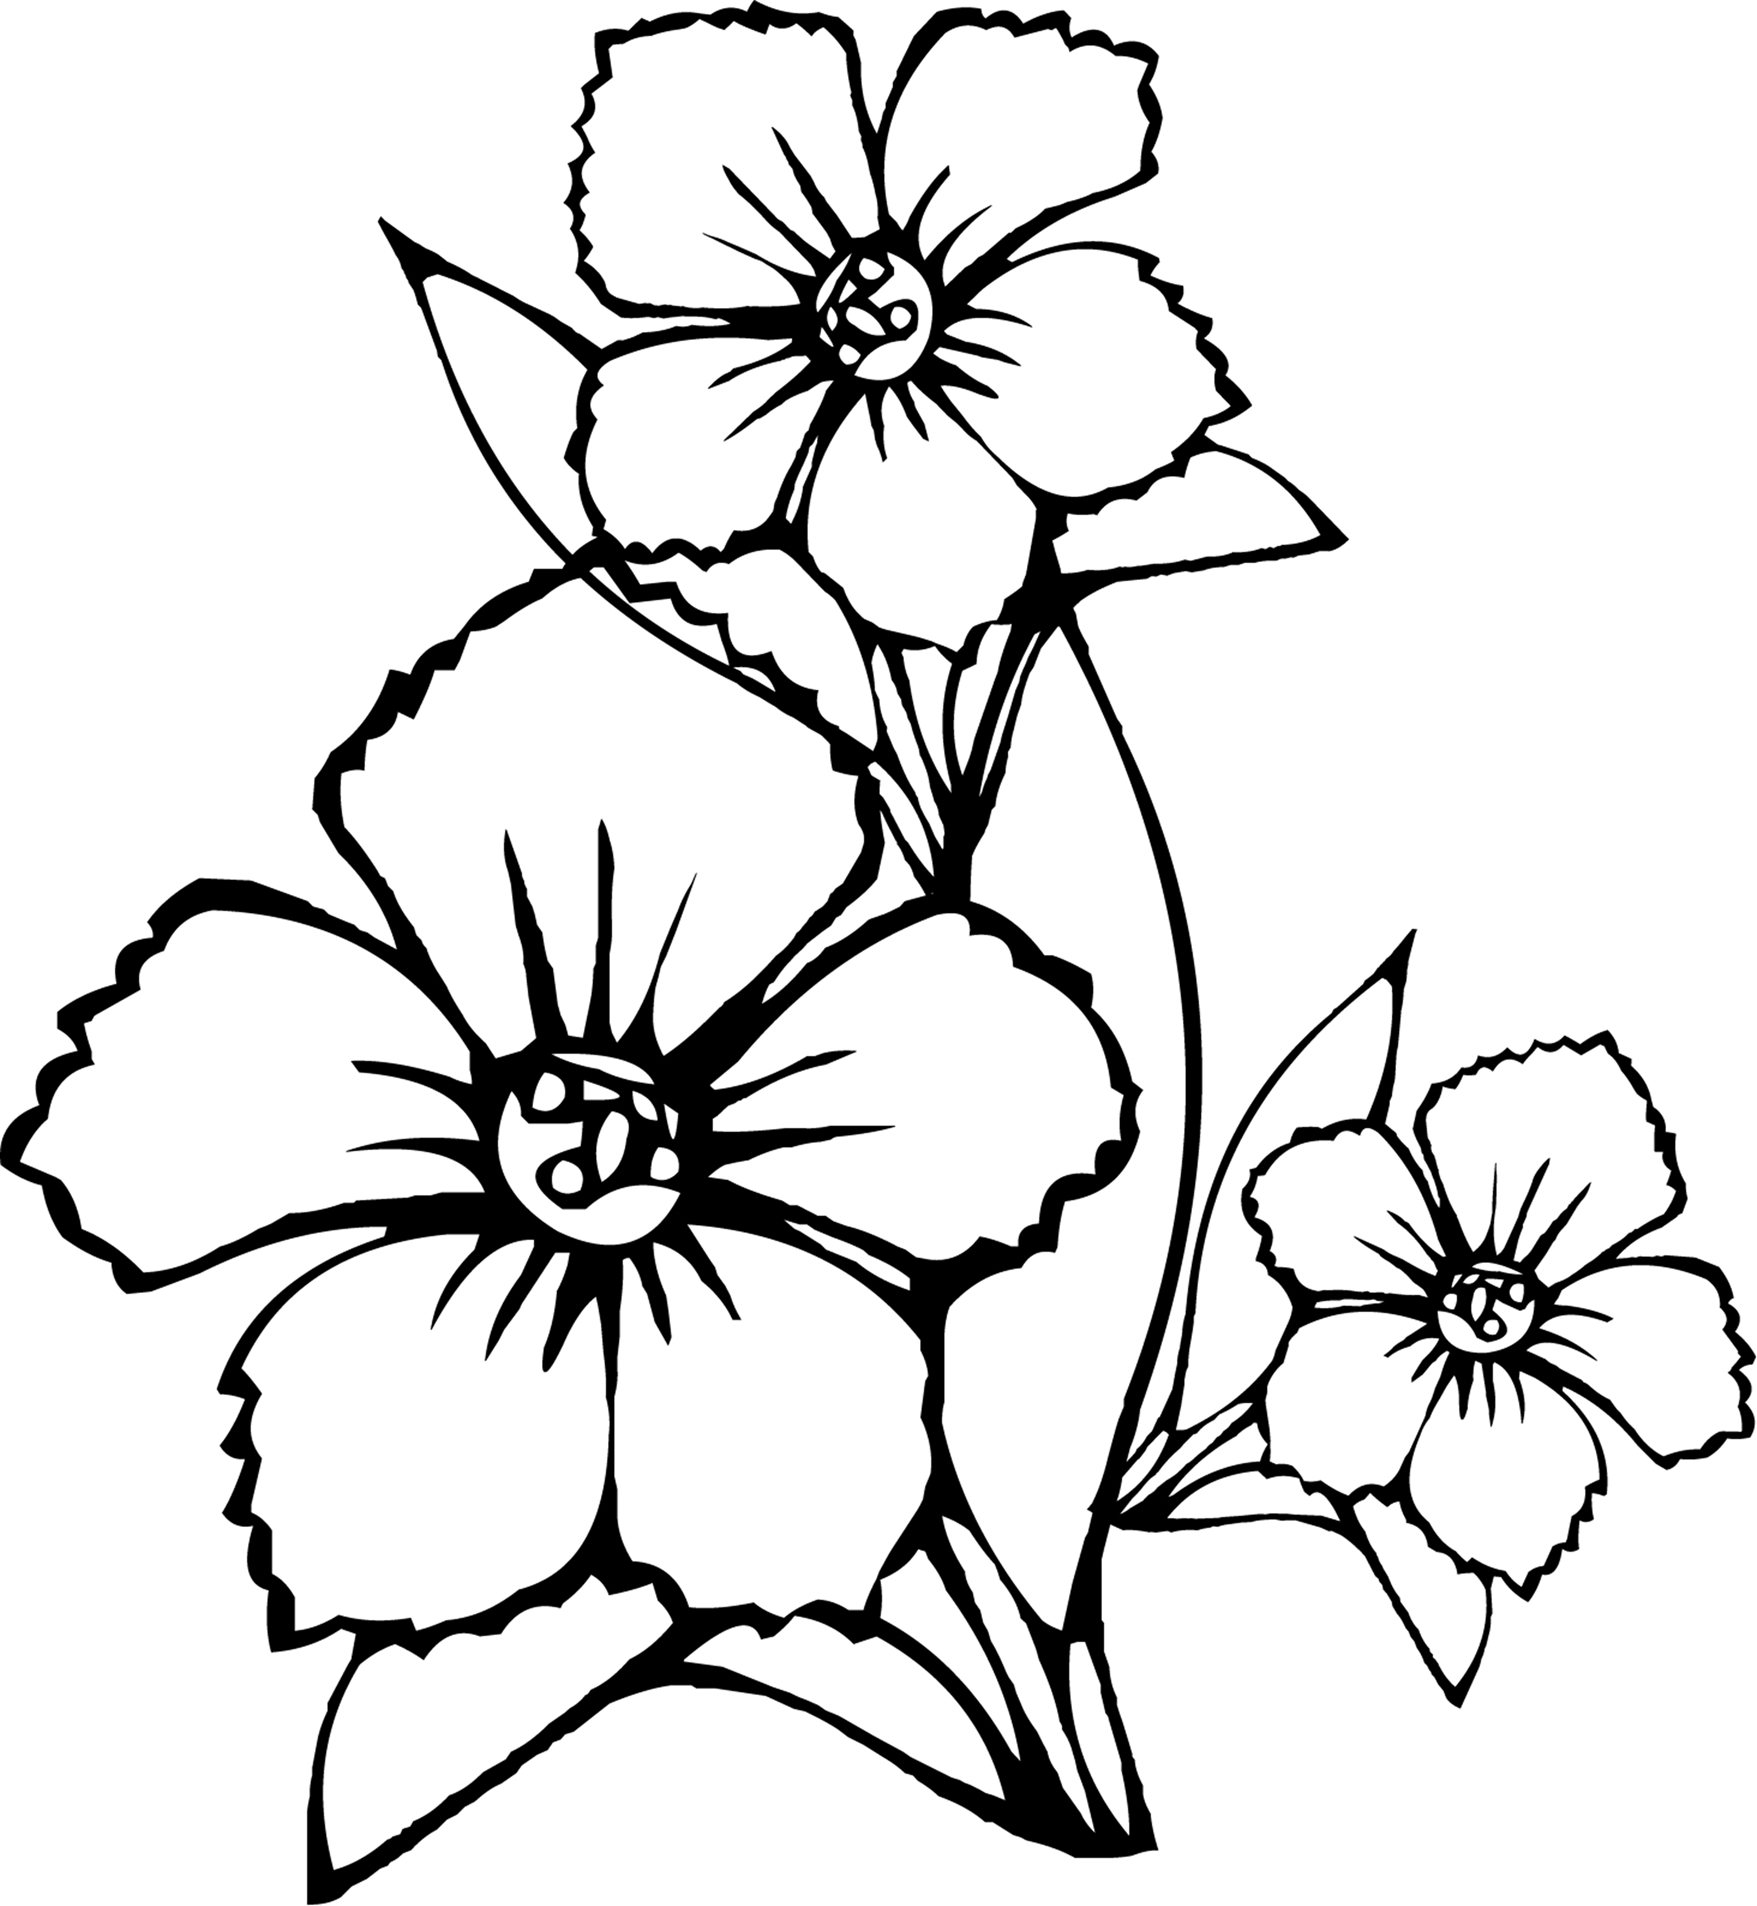 flowers coloring page flowers to color for kids flowers kids coloring pages page flowers coloring